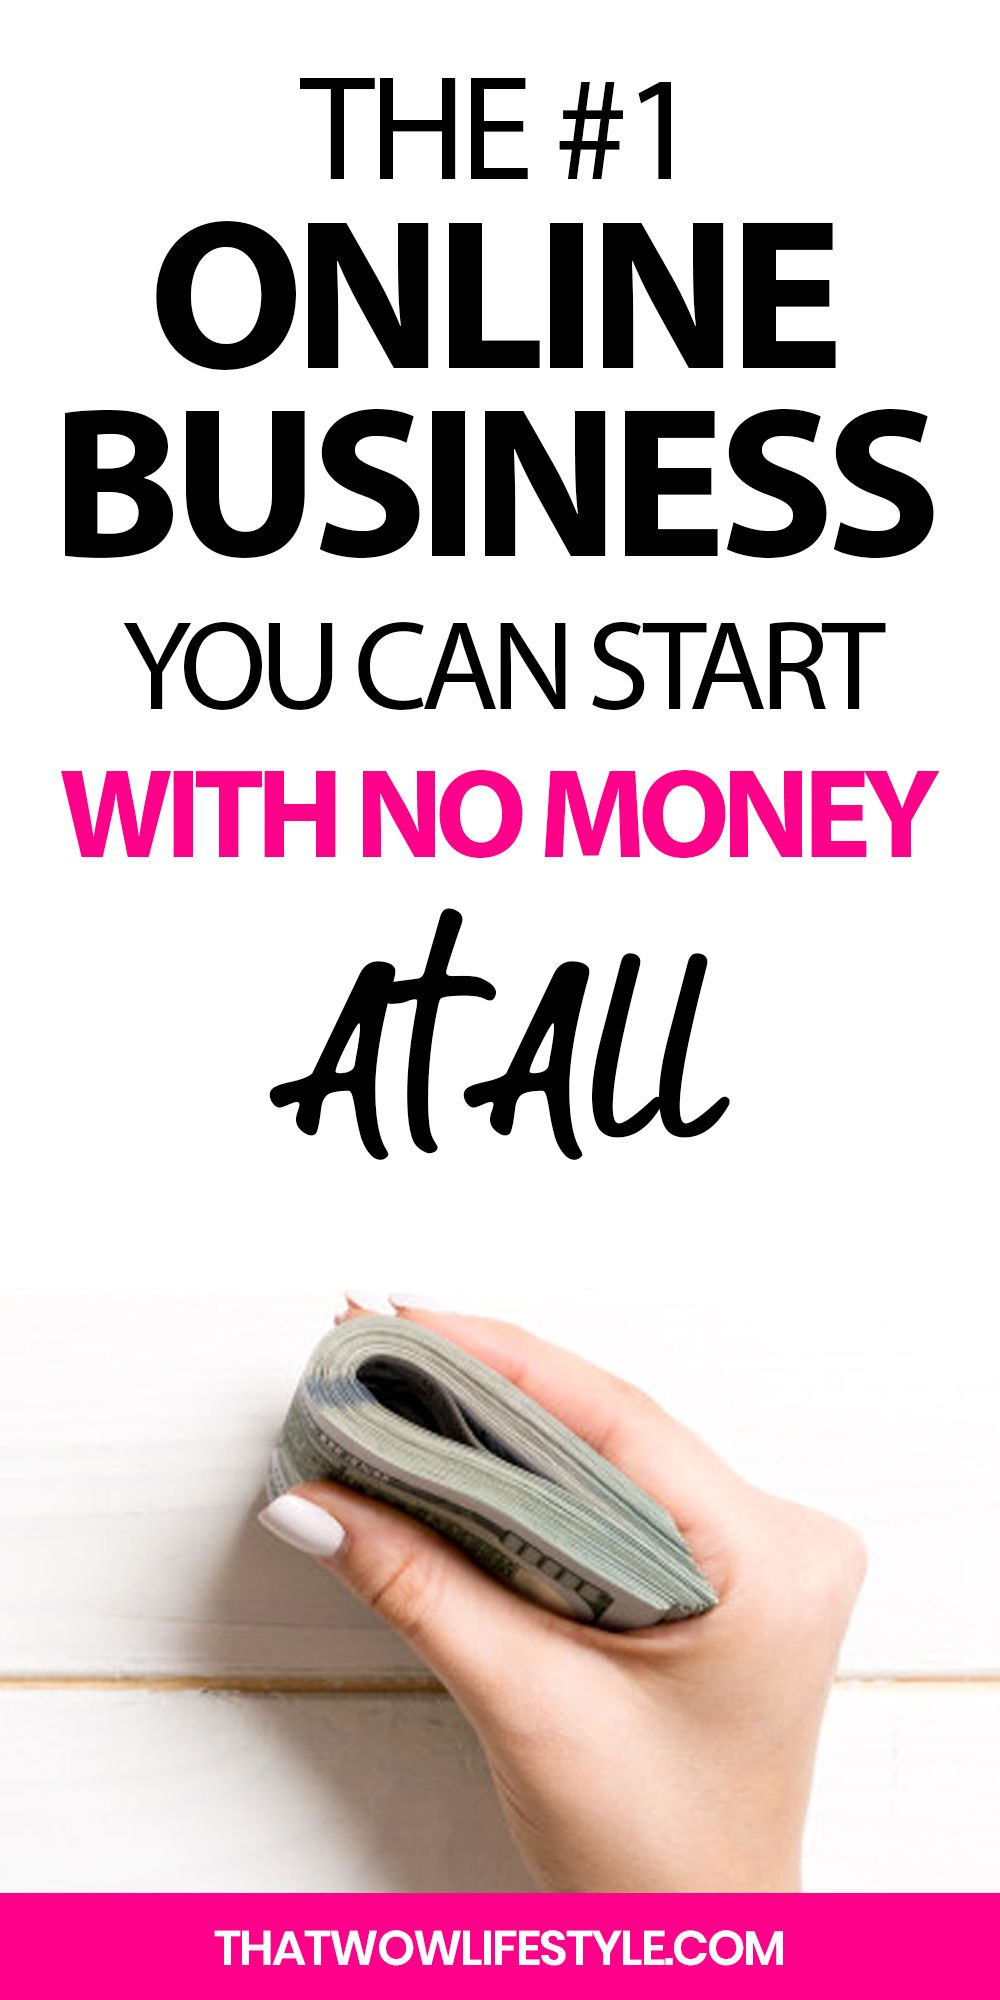 How To Start An Business Without Investment In